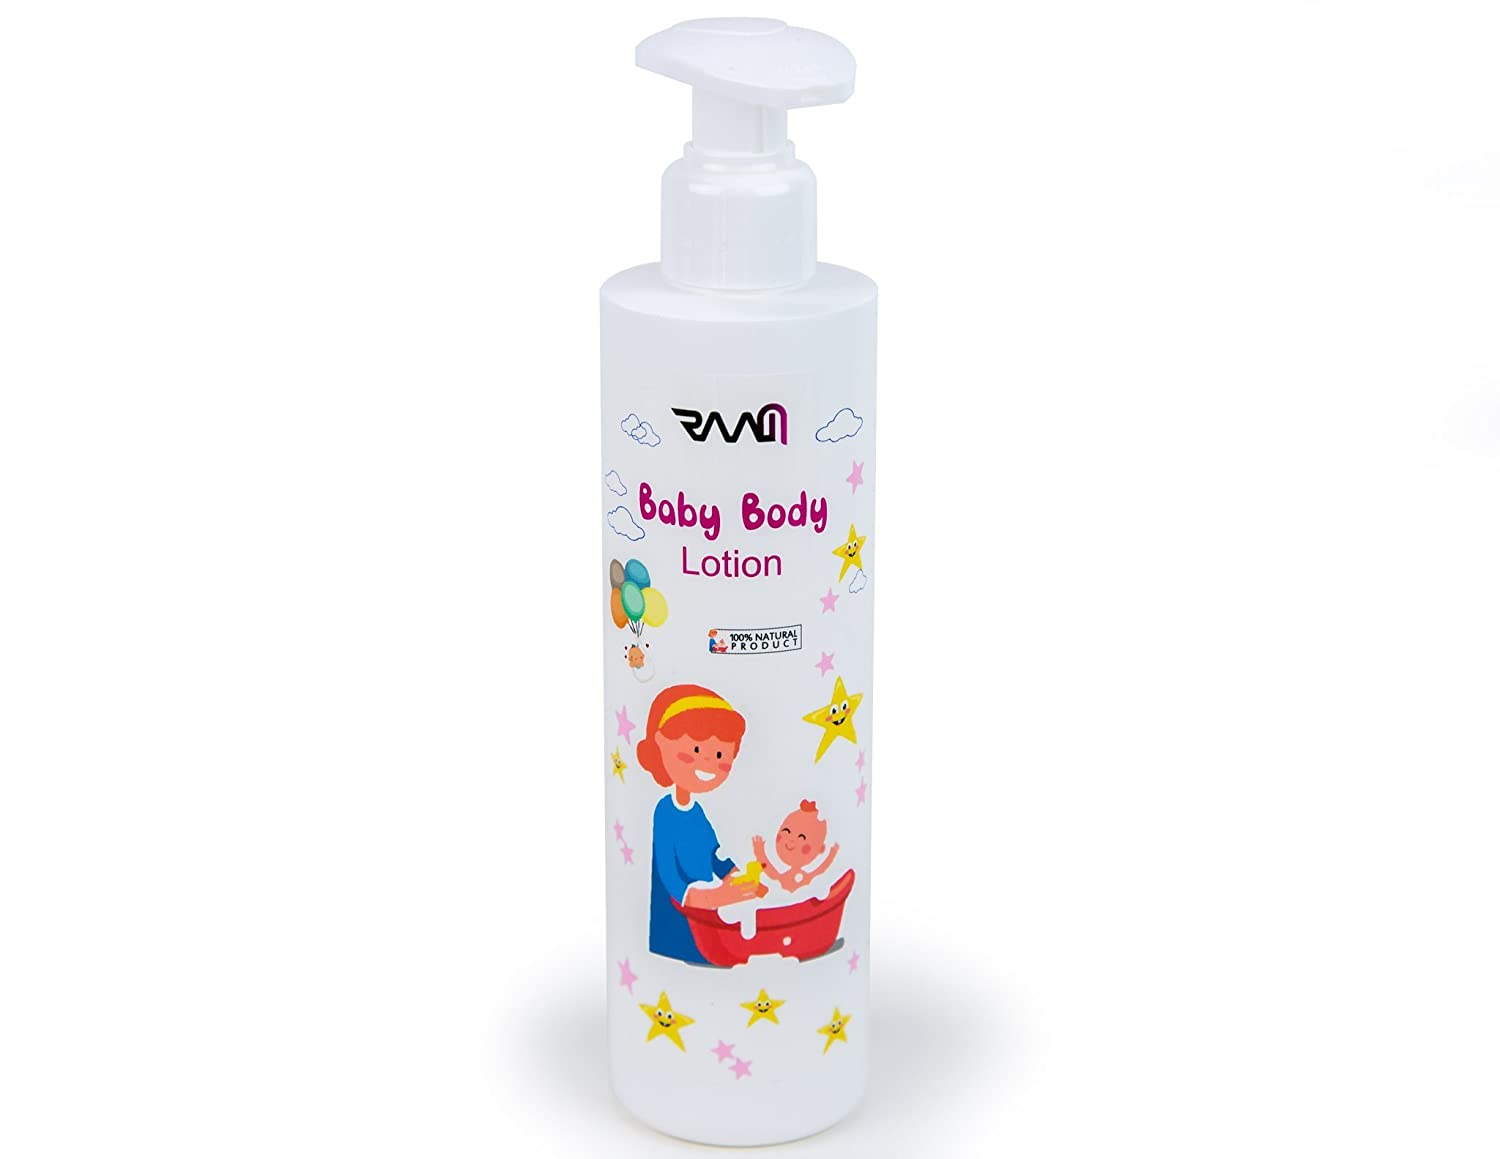 RAAM Baby Moisturizing Lotion - Lab Tested and Certified For Normal, Dry or Sensitive Skin, 100% Natural Product - 250 ml